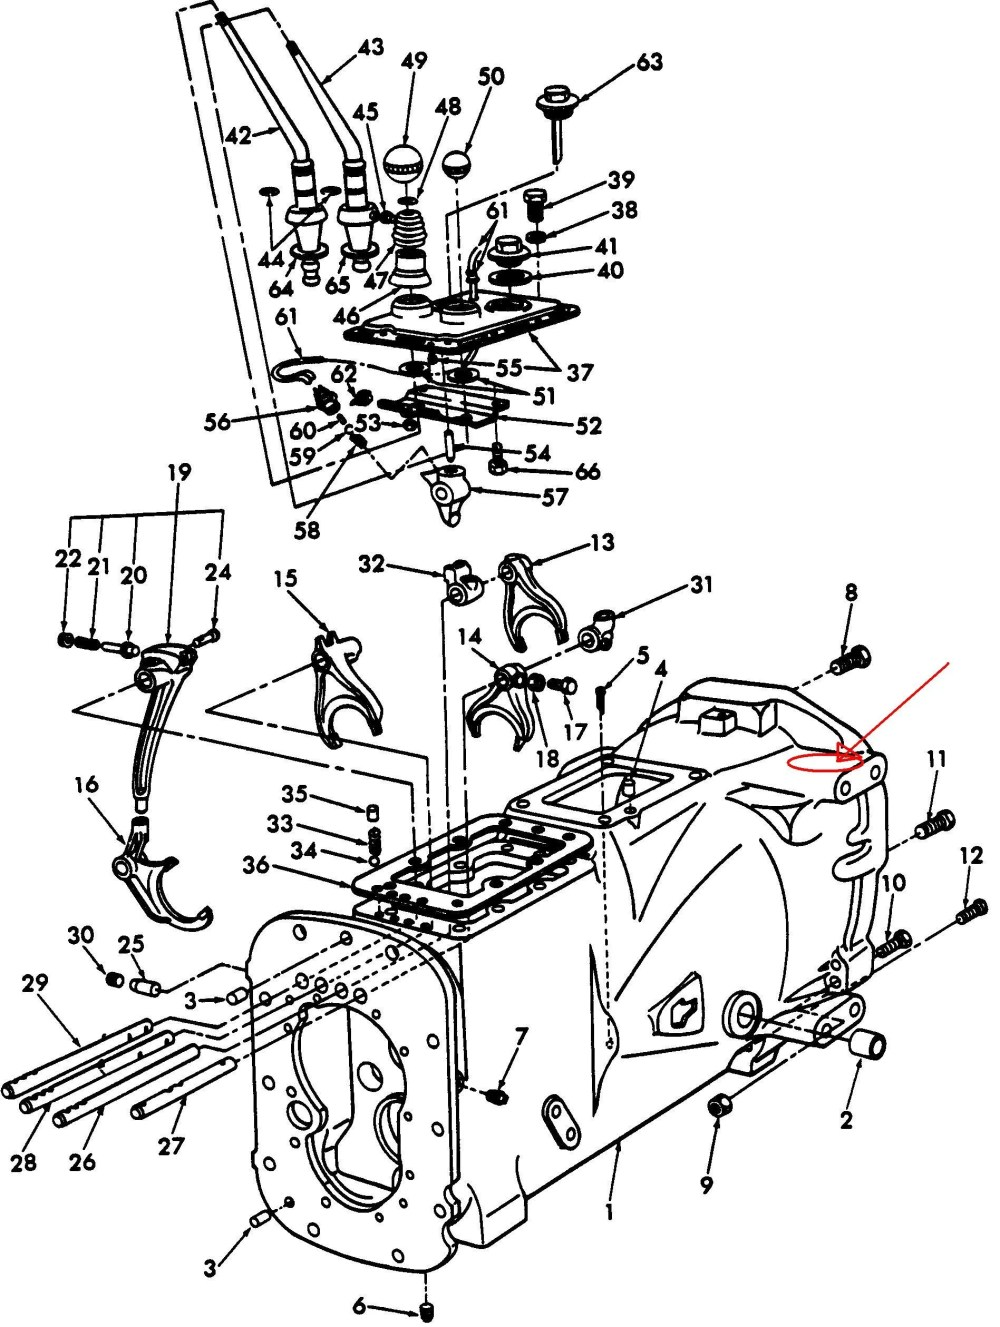 medium resolution of  wiring diagram for a 1951 ford 8n tractor